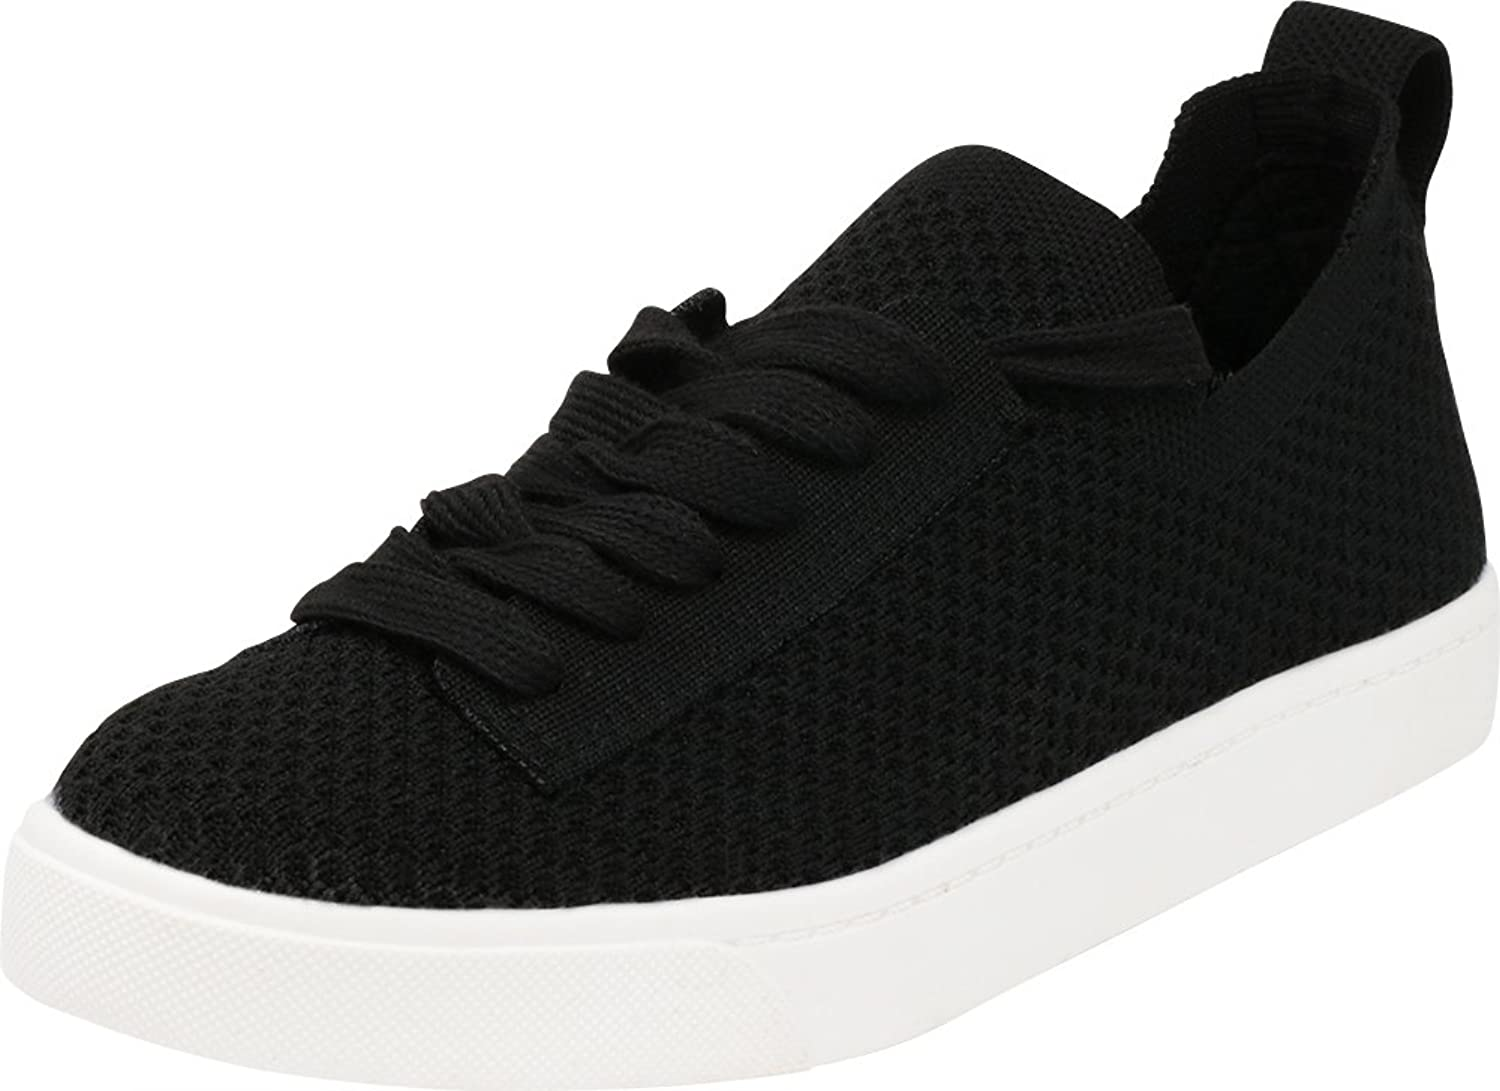 Cambridge Select Women's Closed Round Toe Low Top Lightweight Breathable Casual Sport Fashion Sneaker